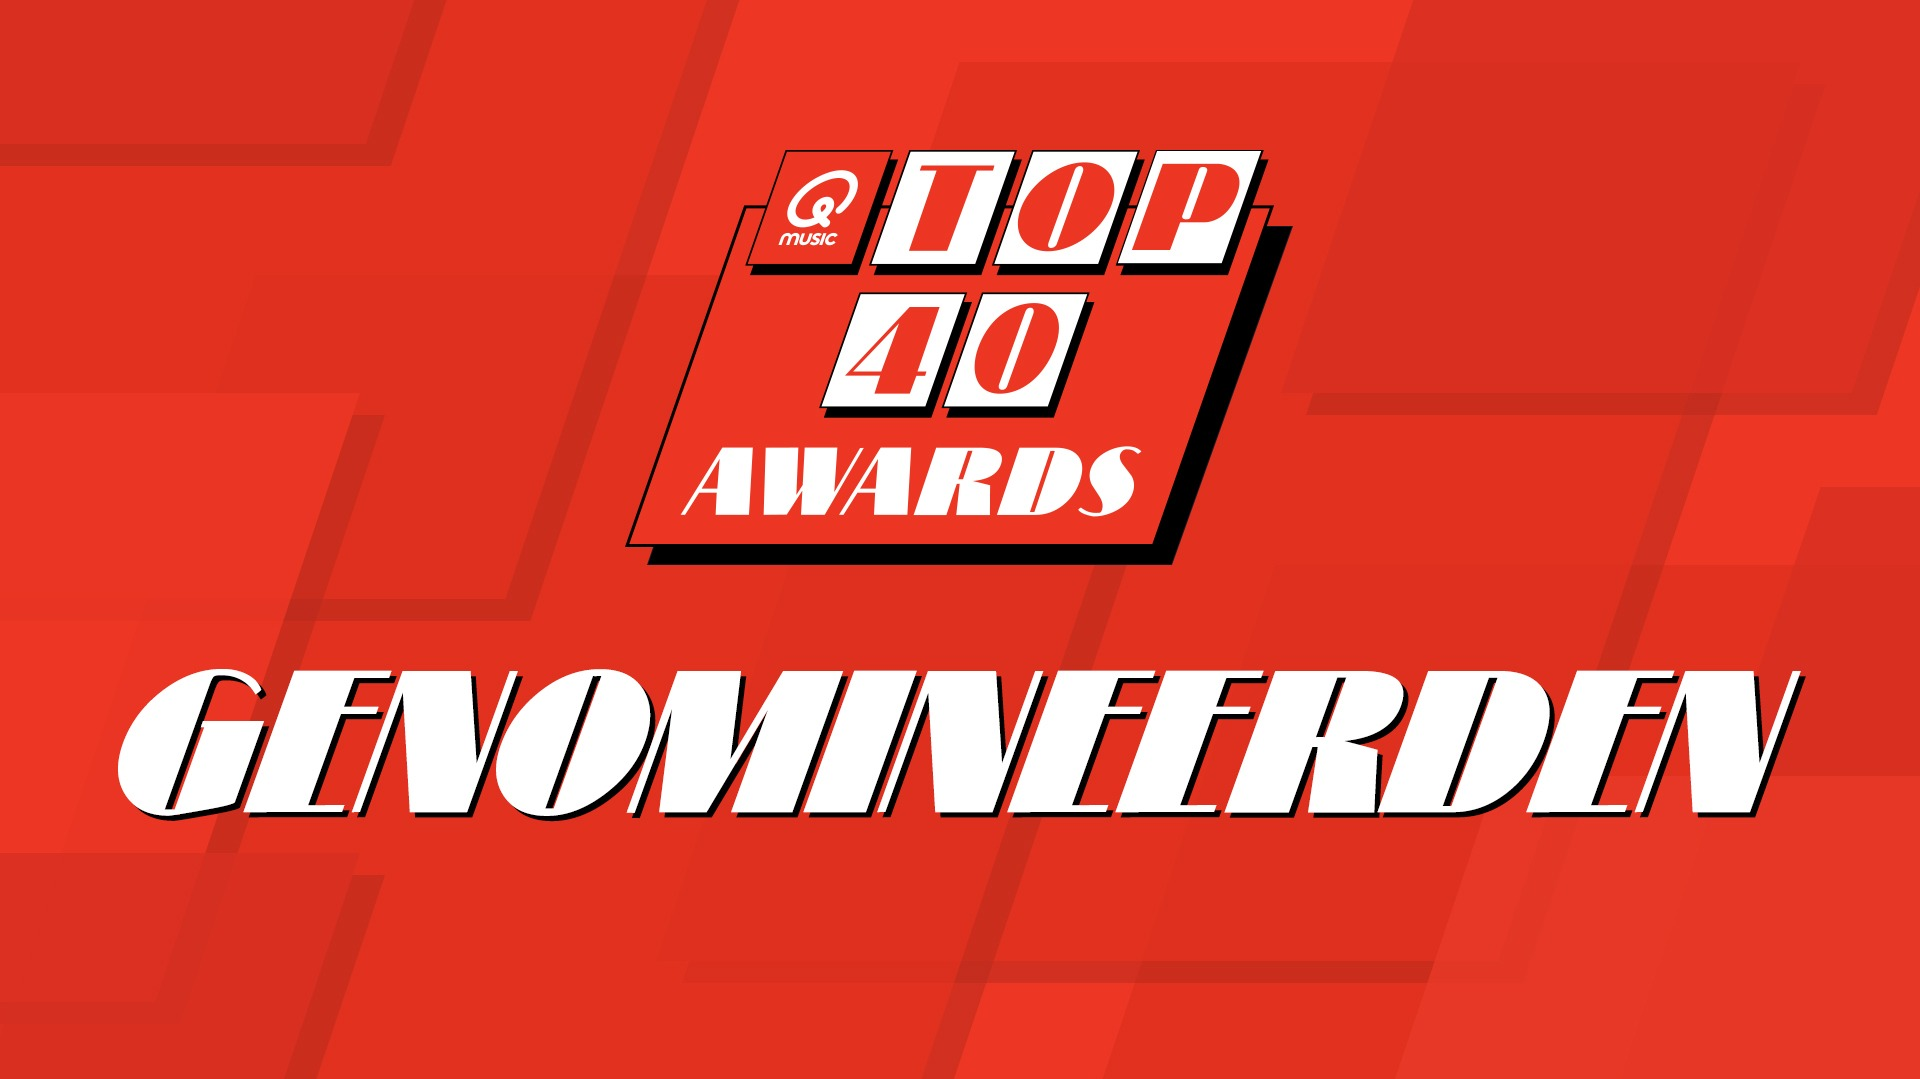 Top40 awards actiepagina genomineerden v01